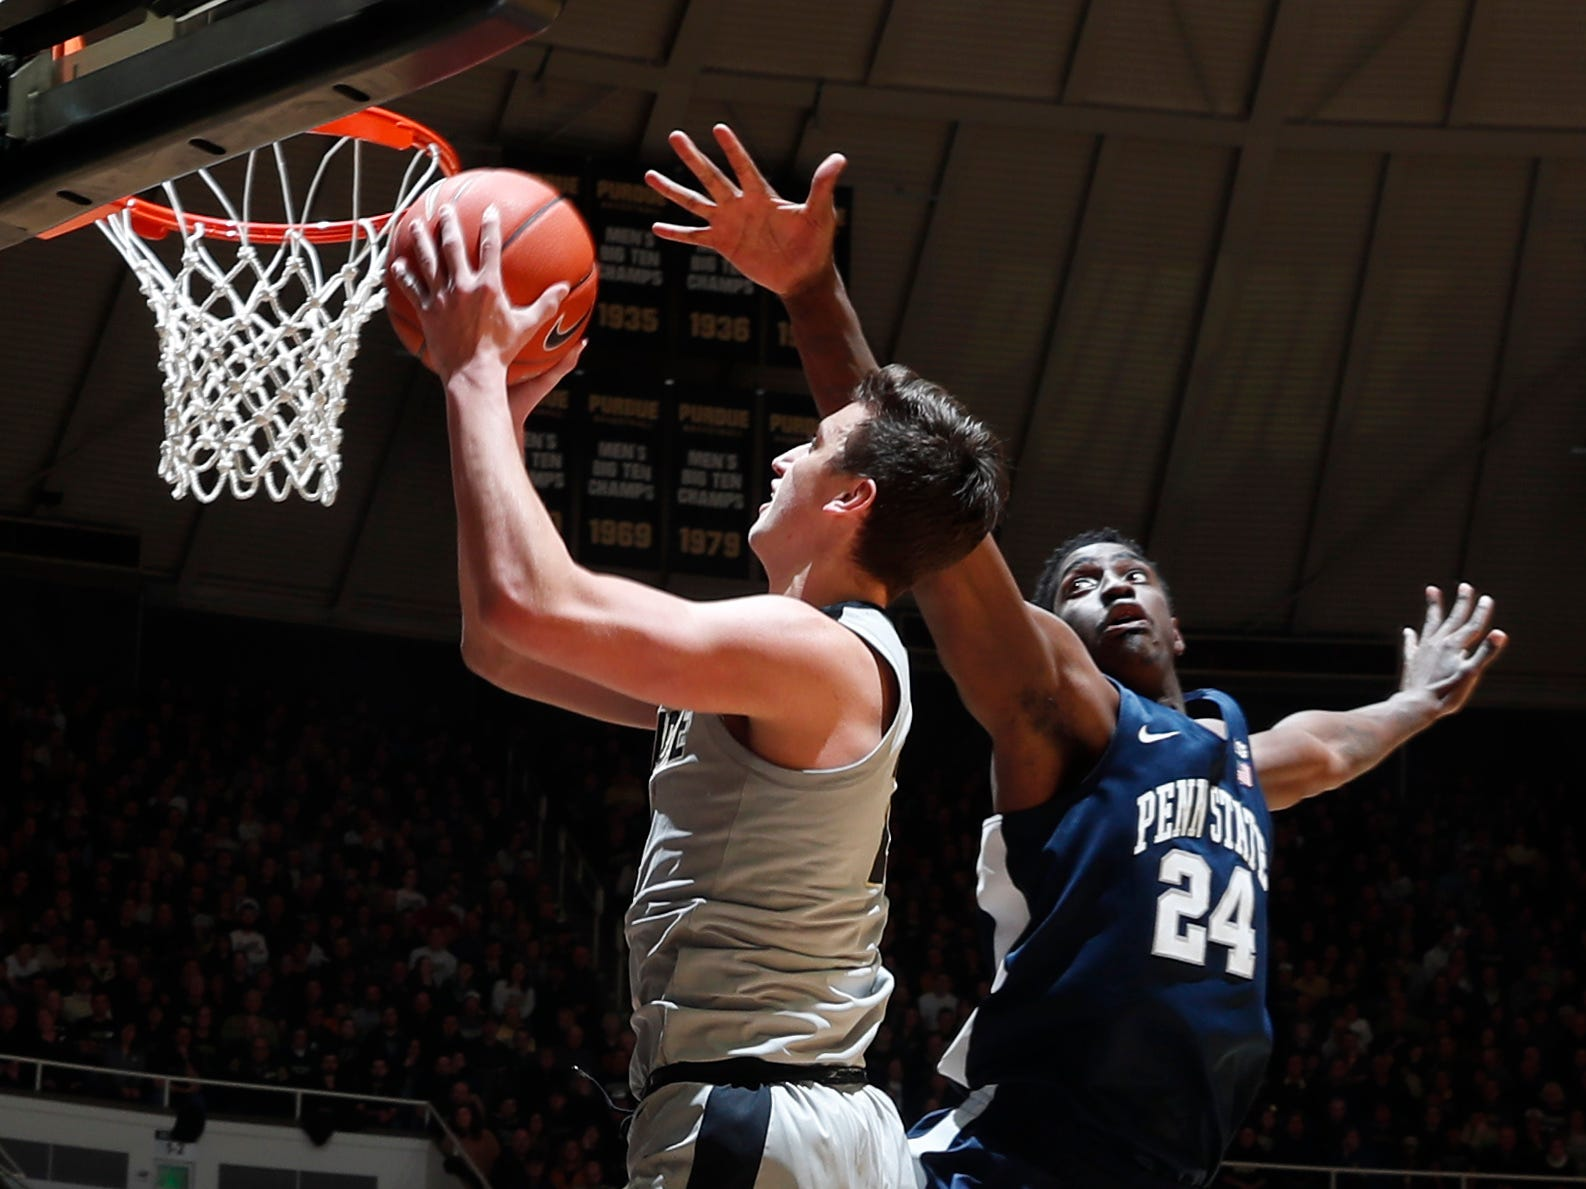 Purdue Boilermakers forward Grady Eifert (24) takes a shot against Penn State Nittany Lions forward Mike Watkins (24) during the second half at Mackey Arena.